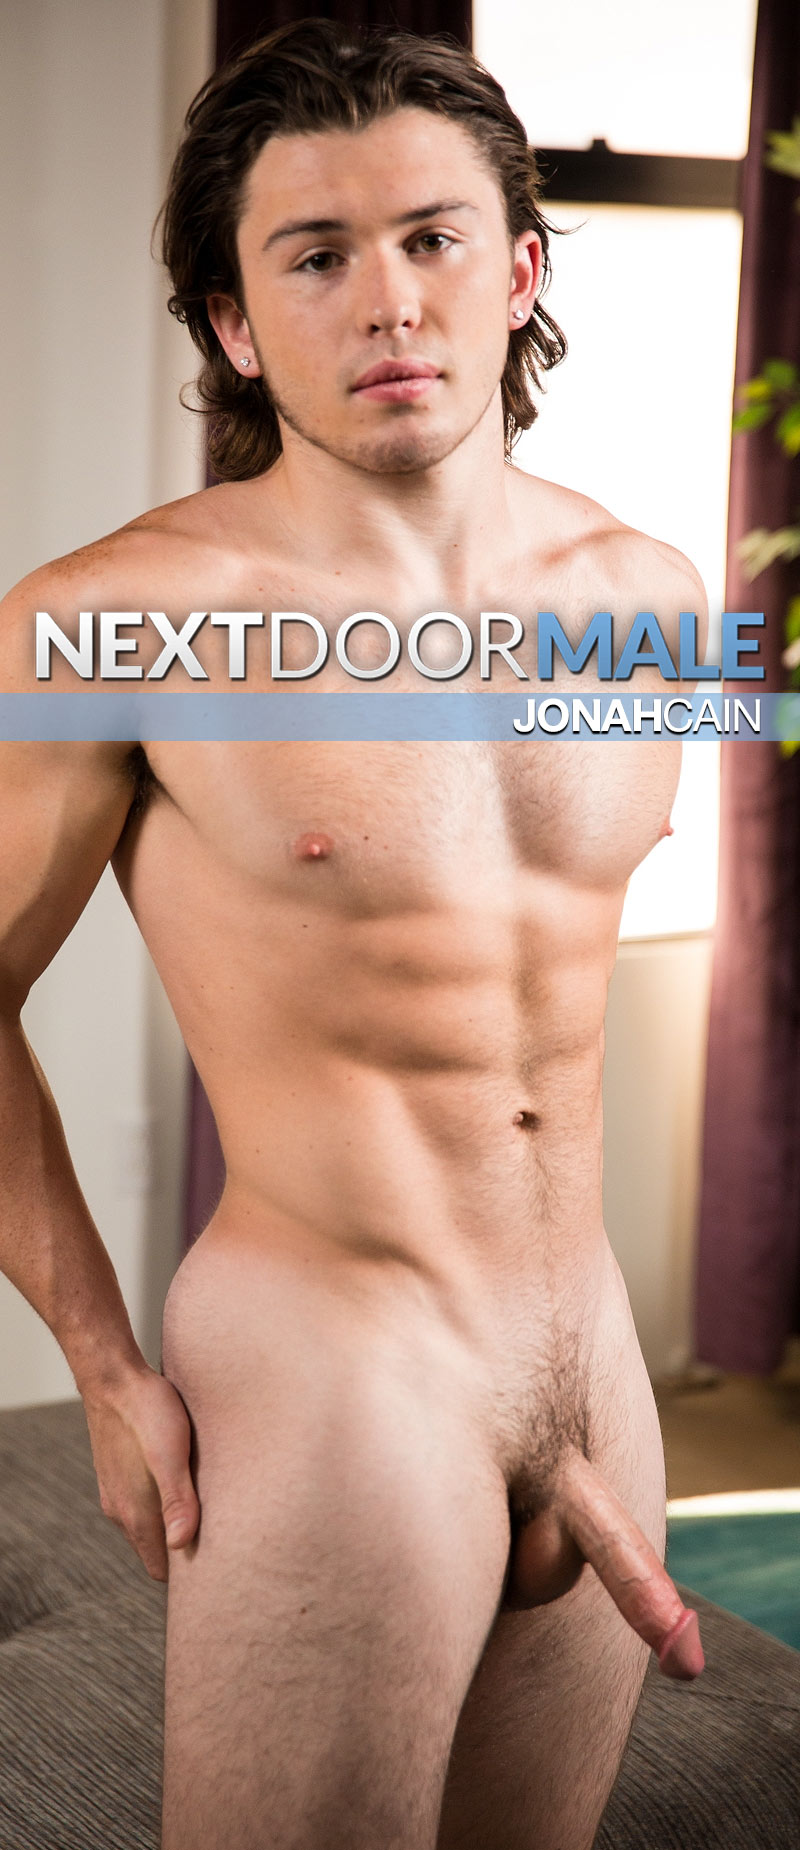 Jonah Cain at Next Door Male